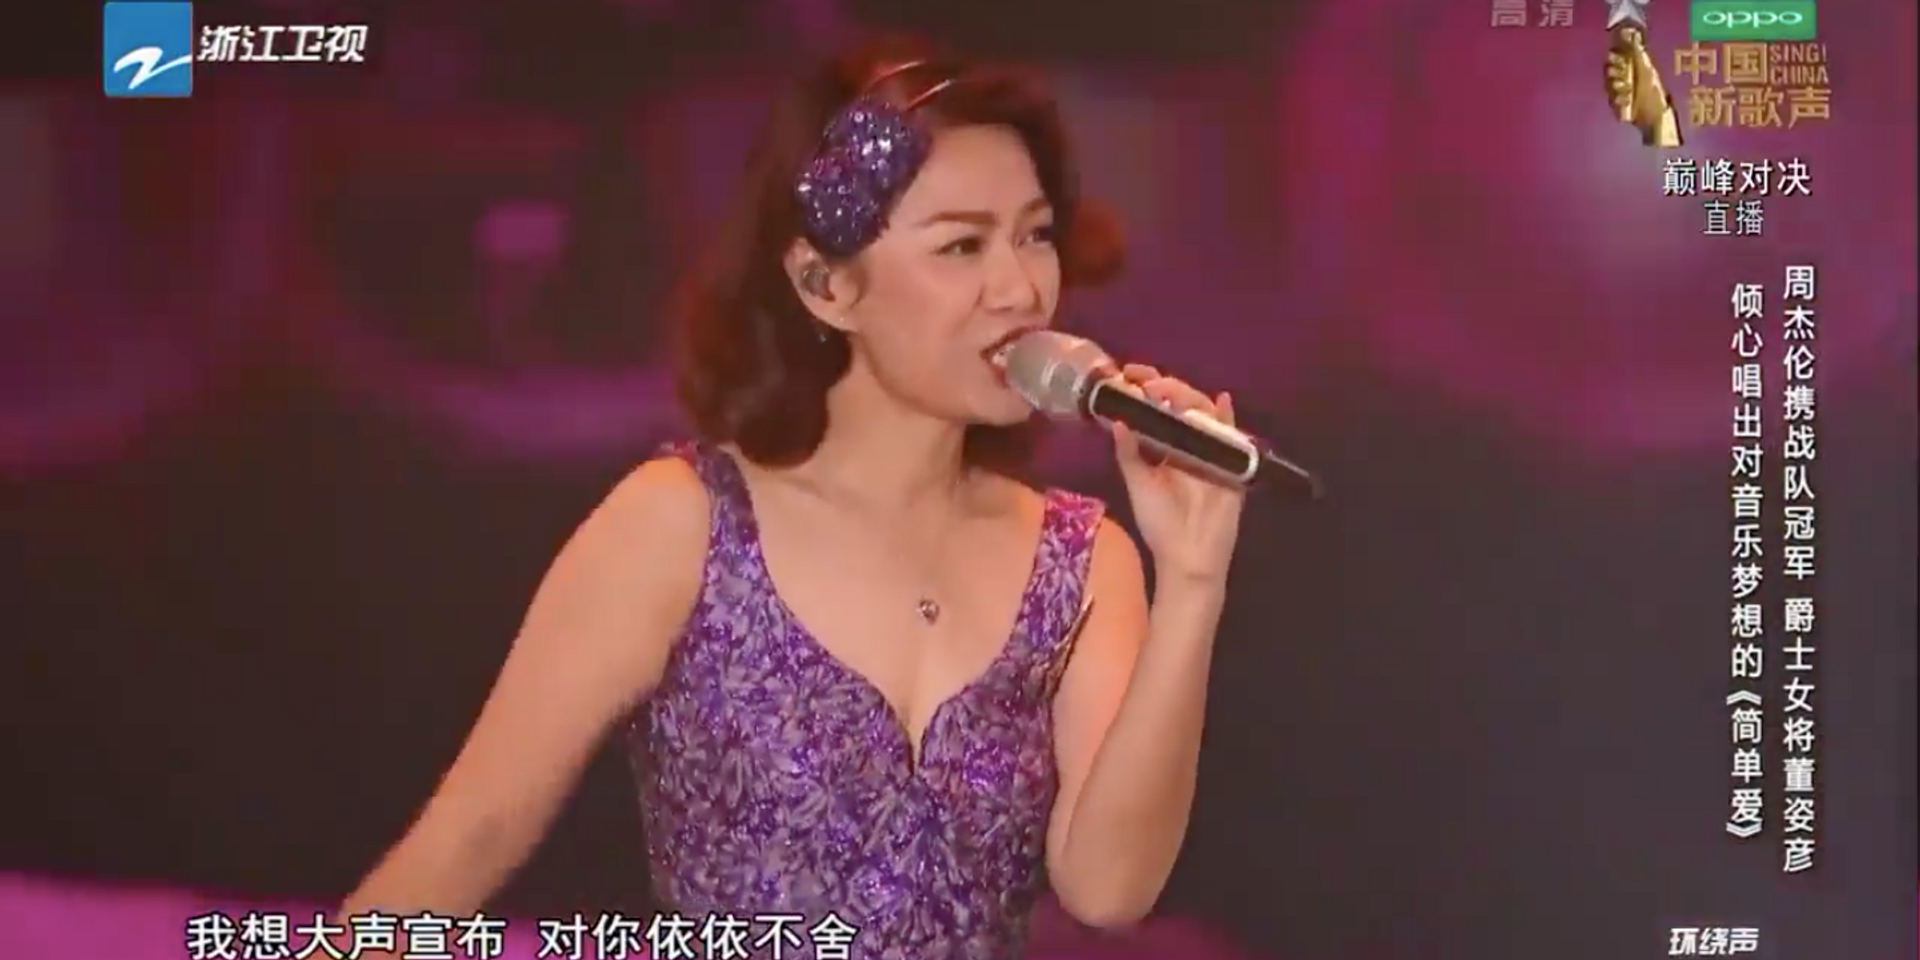 Joanna Dong places third in Sing! China finals